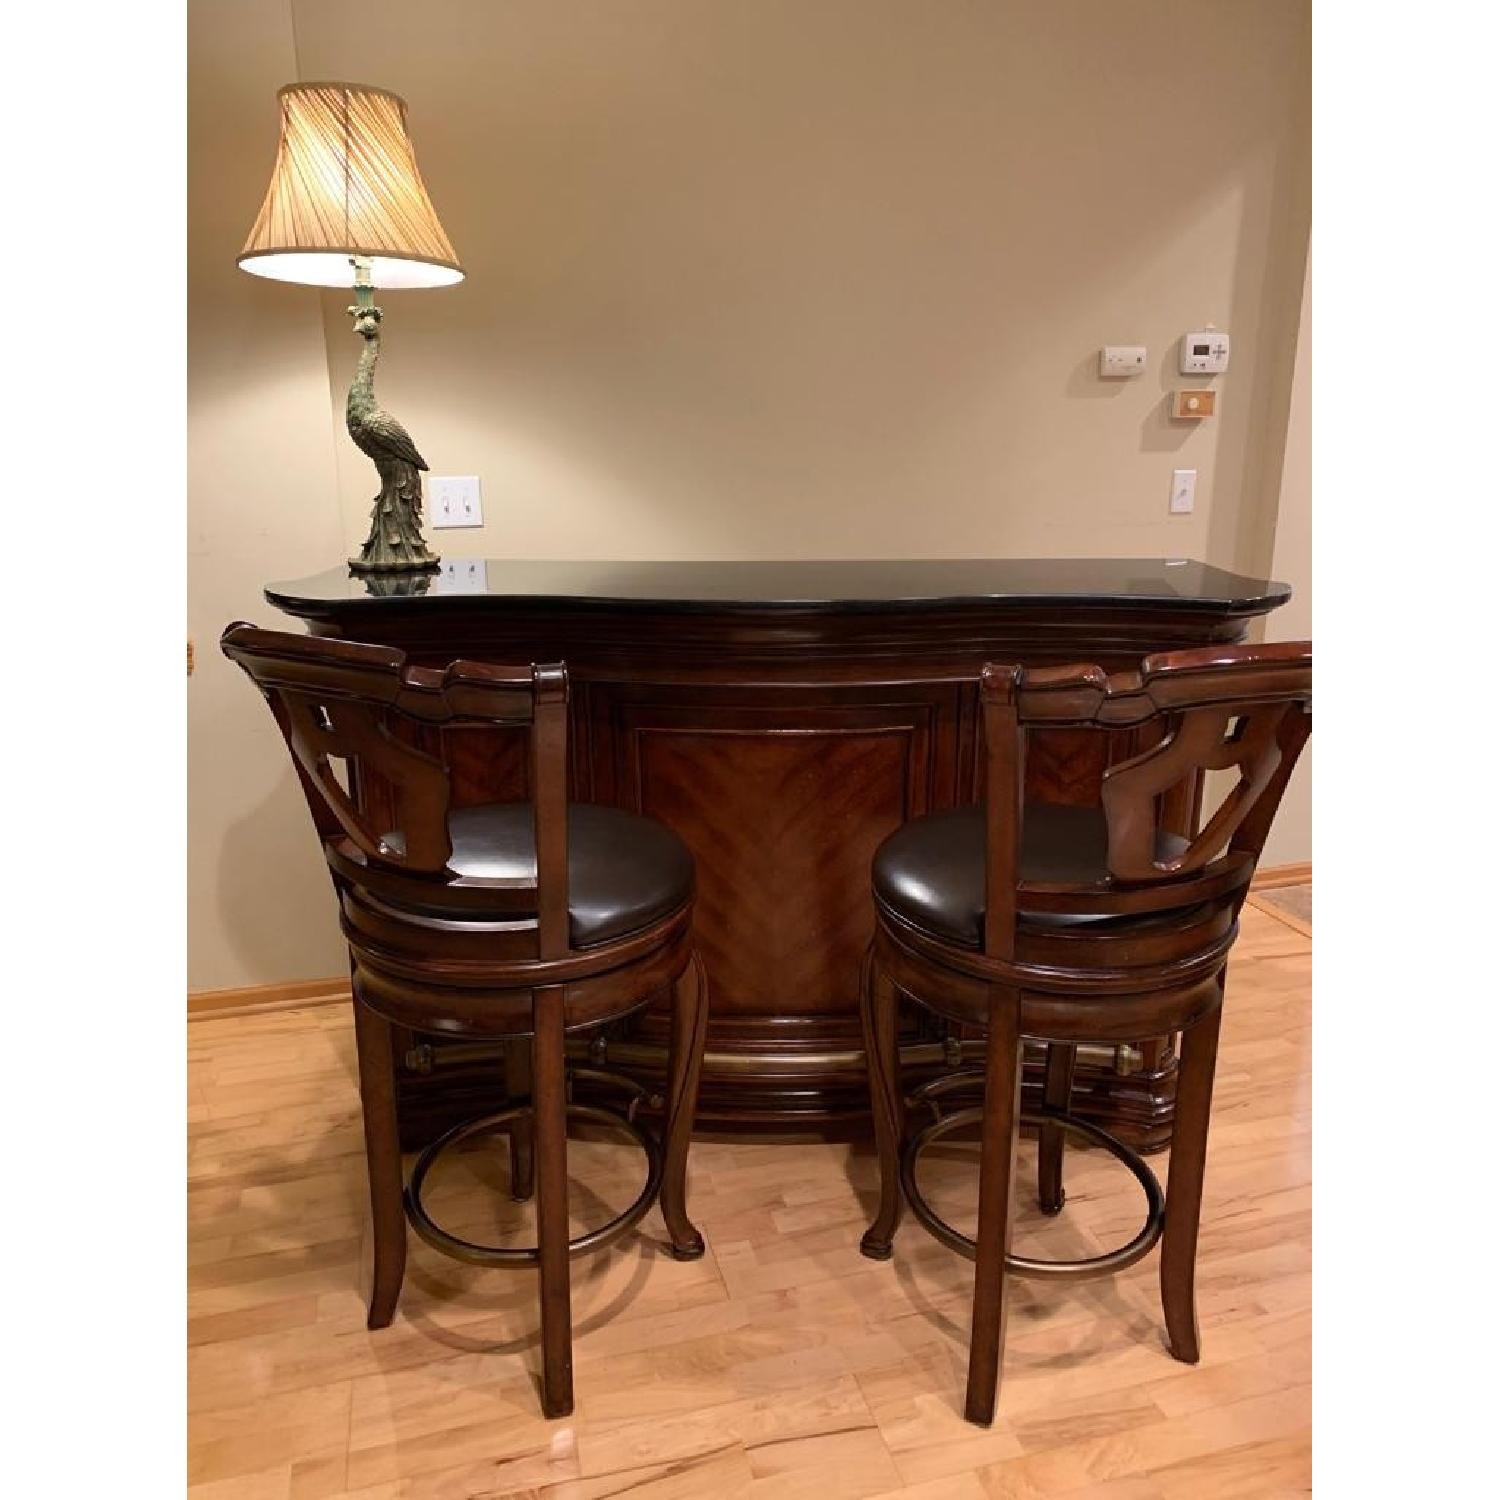 Macy's Home Bar Cabinet w/ 2 Stools-0